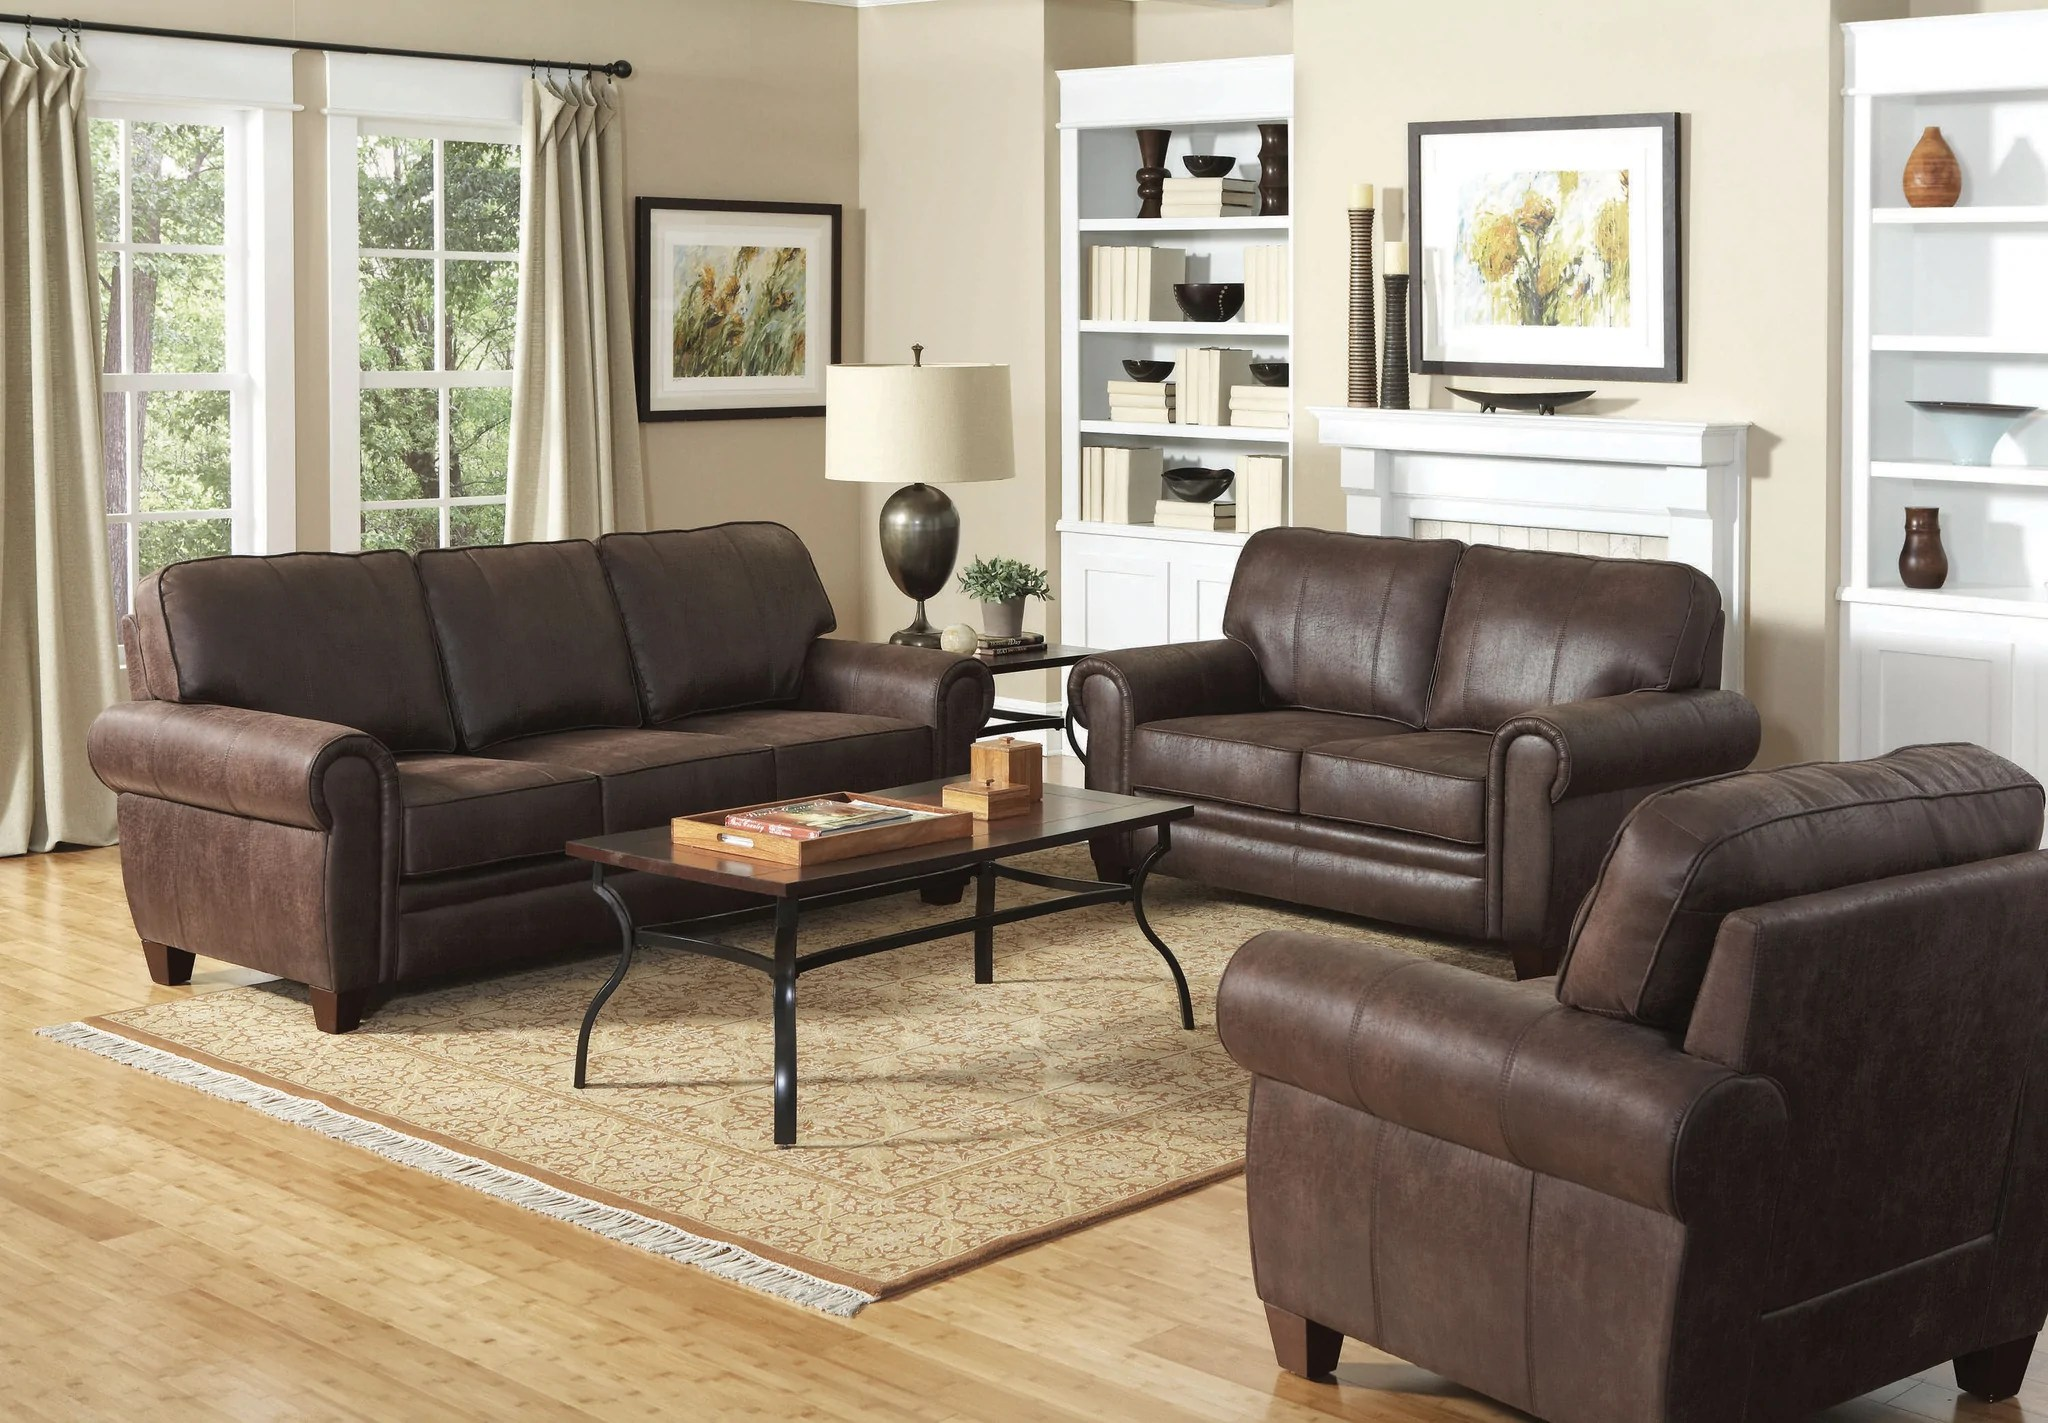 microfiber living room furniture sets accent benches traditional brown leather like set best for